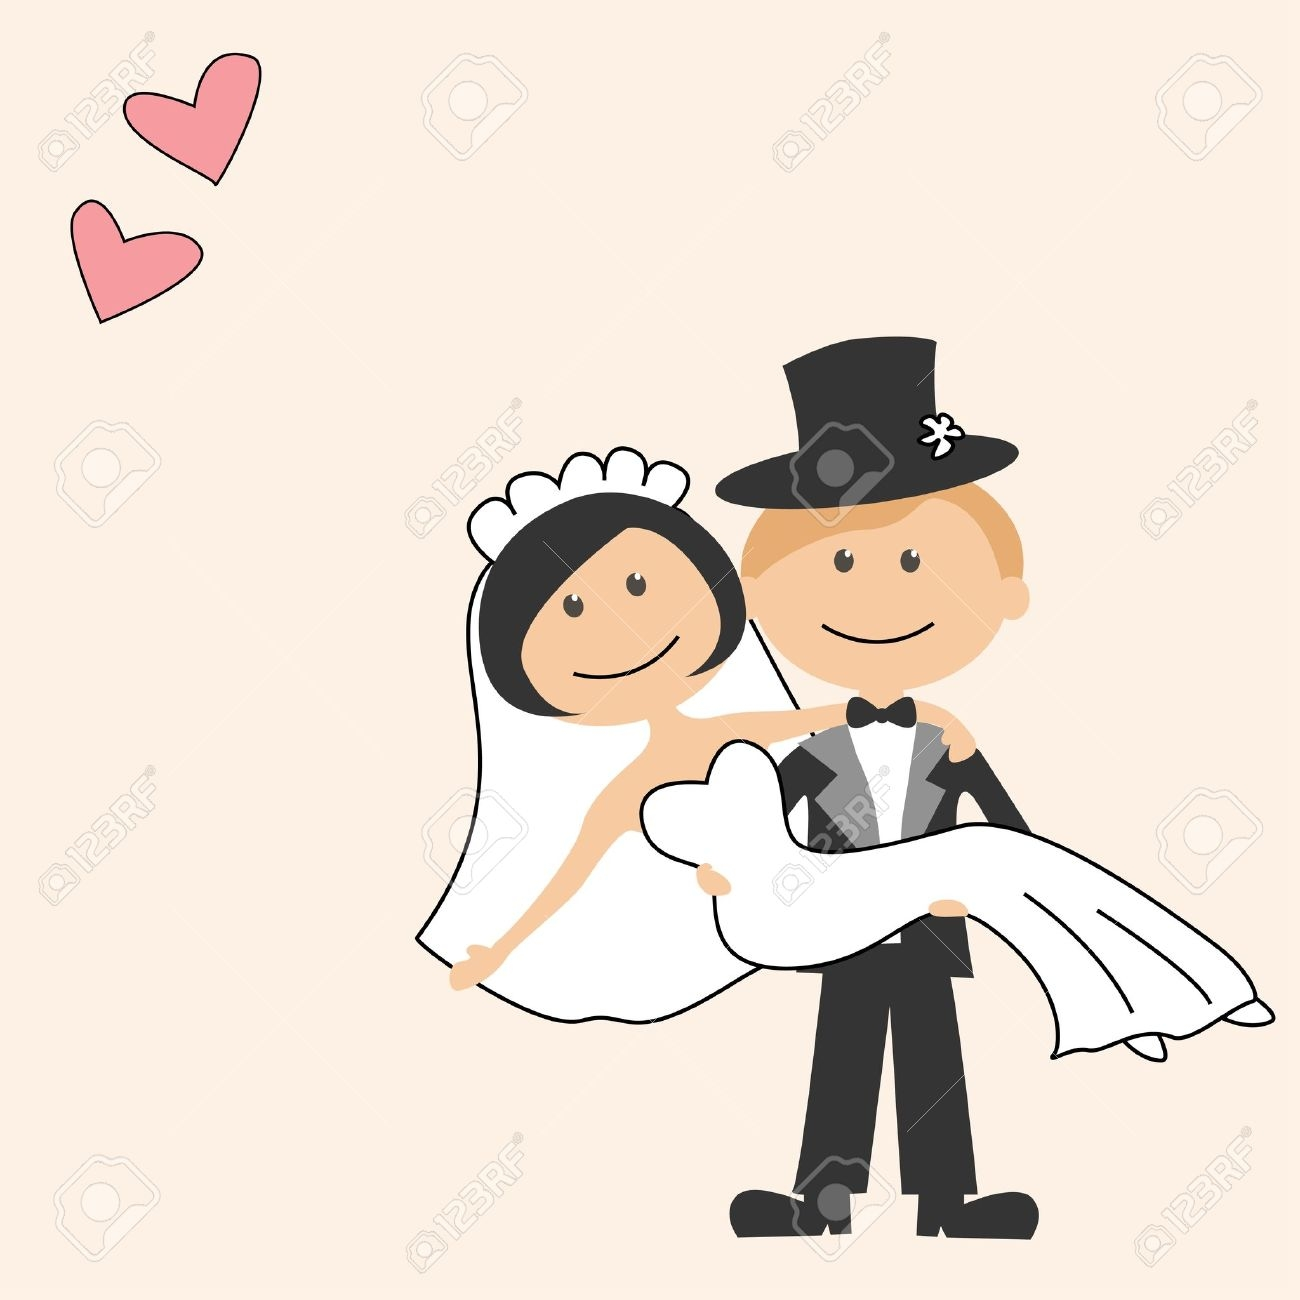 Funny Bride And Groom Clipart.